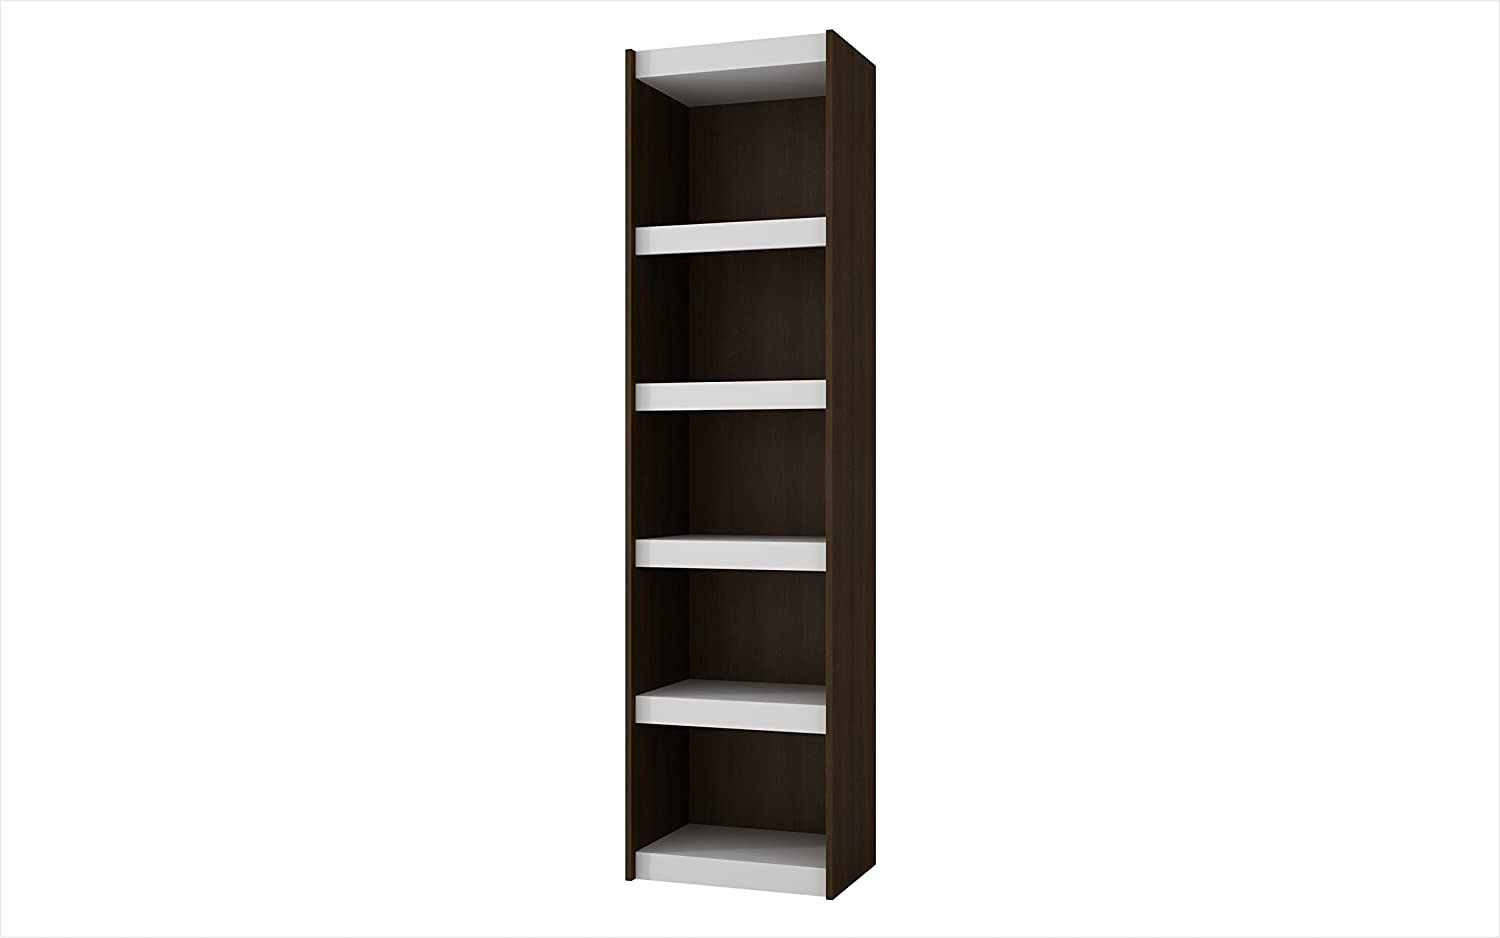 Manhattan Comfort Valuable Parana Modern Stylish Home or Office Bookcase 2.0 With 5 Shelves - White Shelves & Tobacco